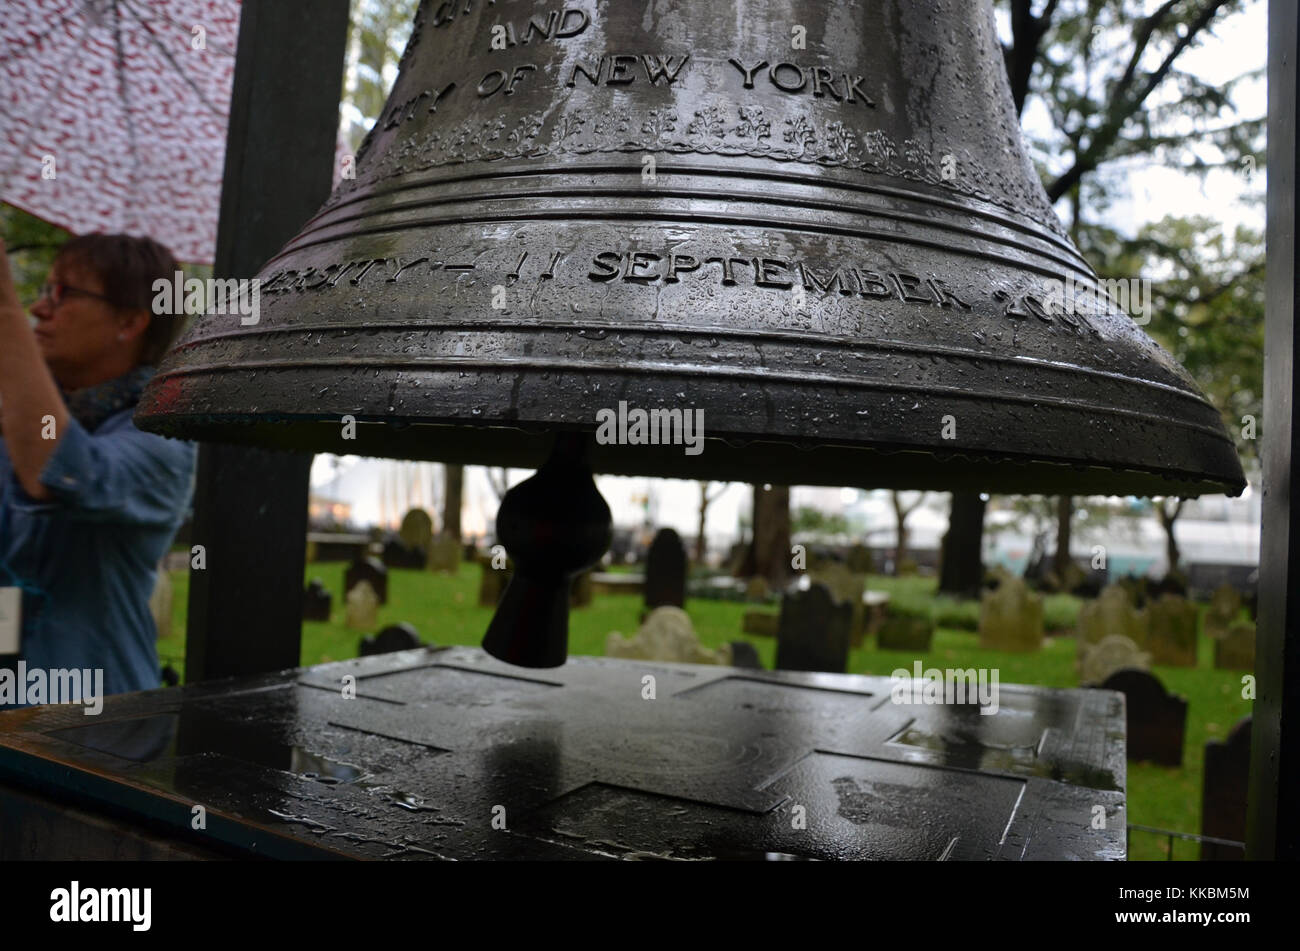 The Bell of Hope at St. Paul's Chapel Ground Zero New York City - Stock Image